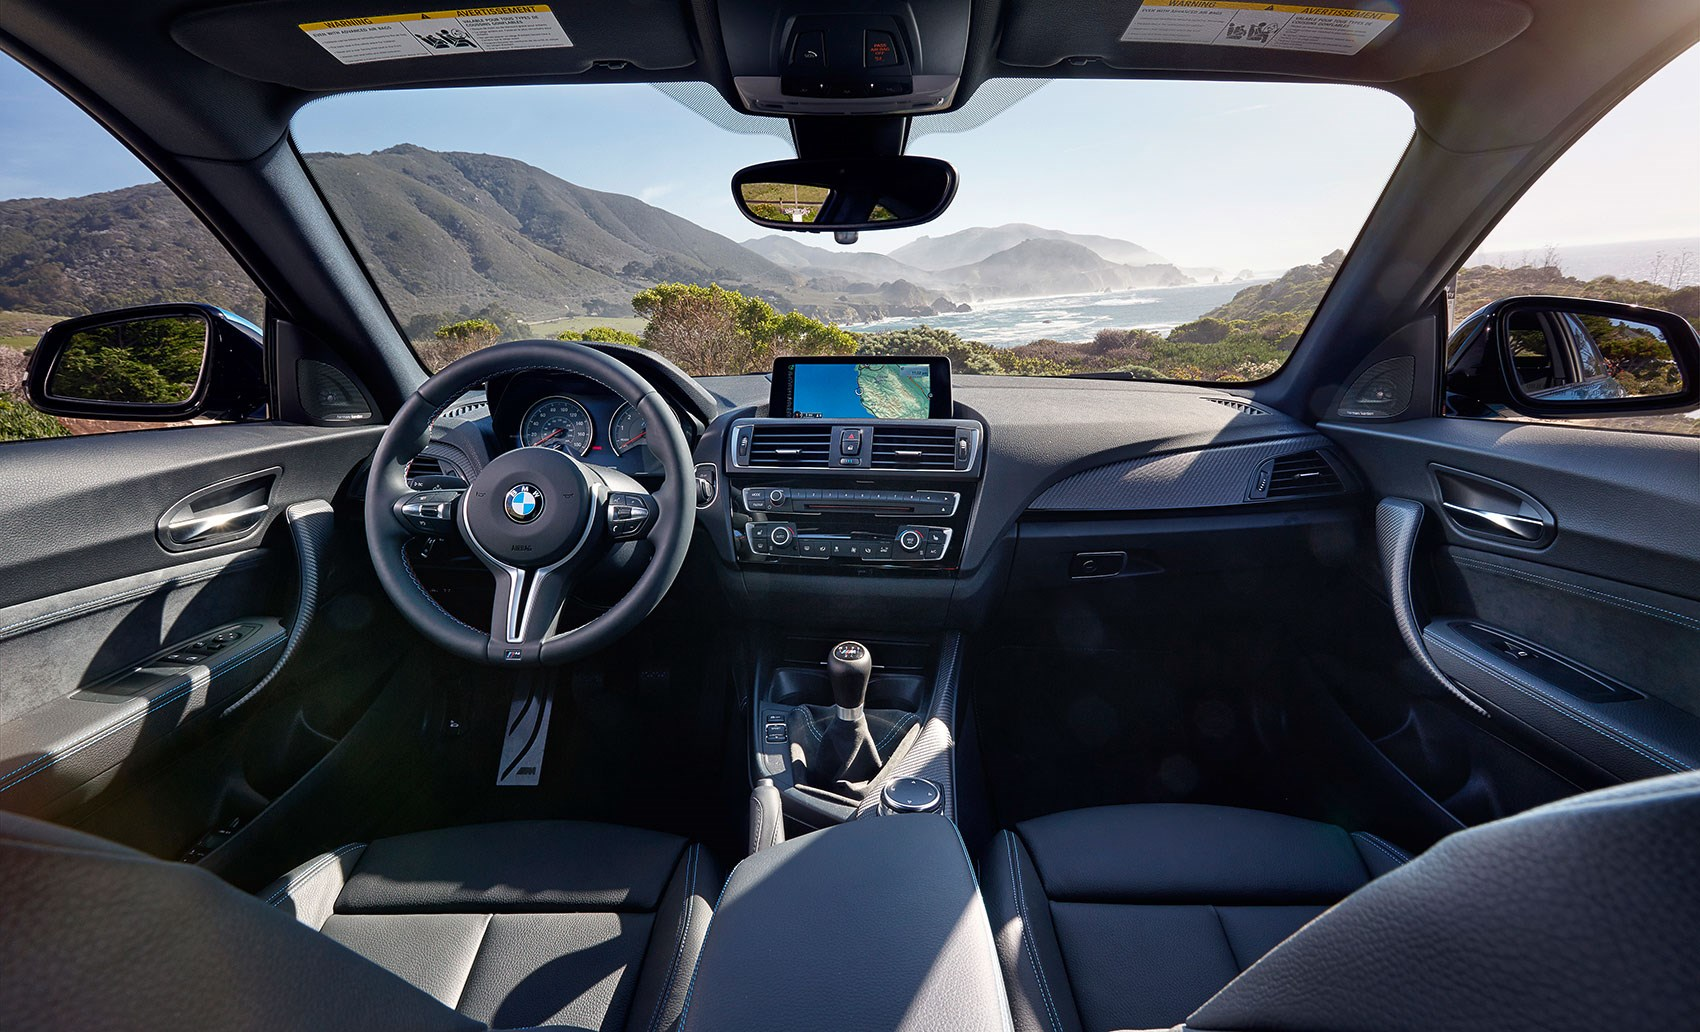 More Info On BMW 2 Series